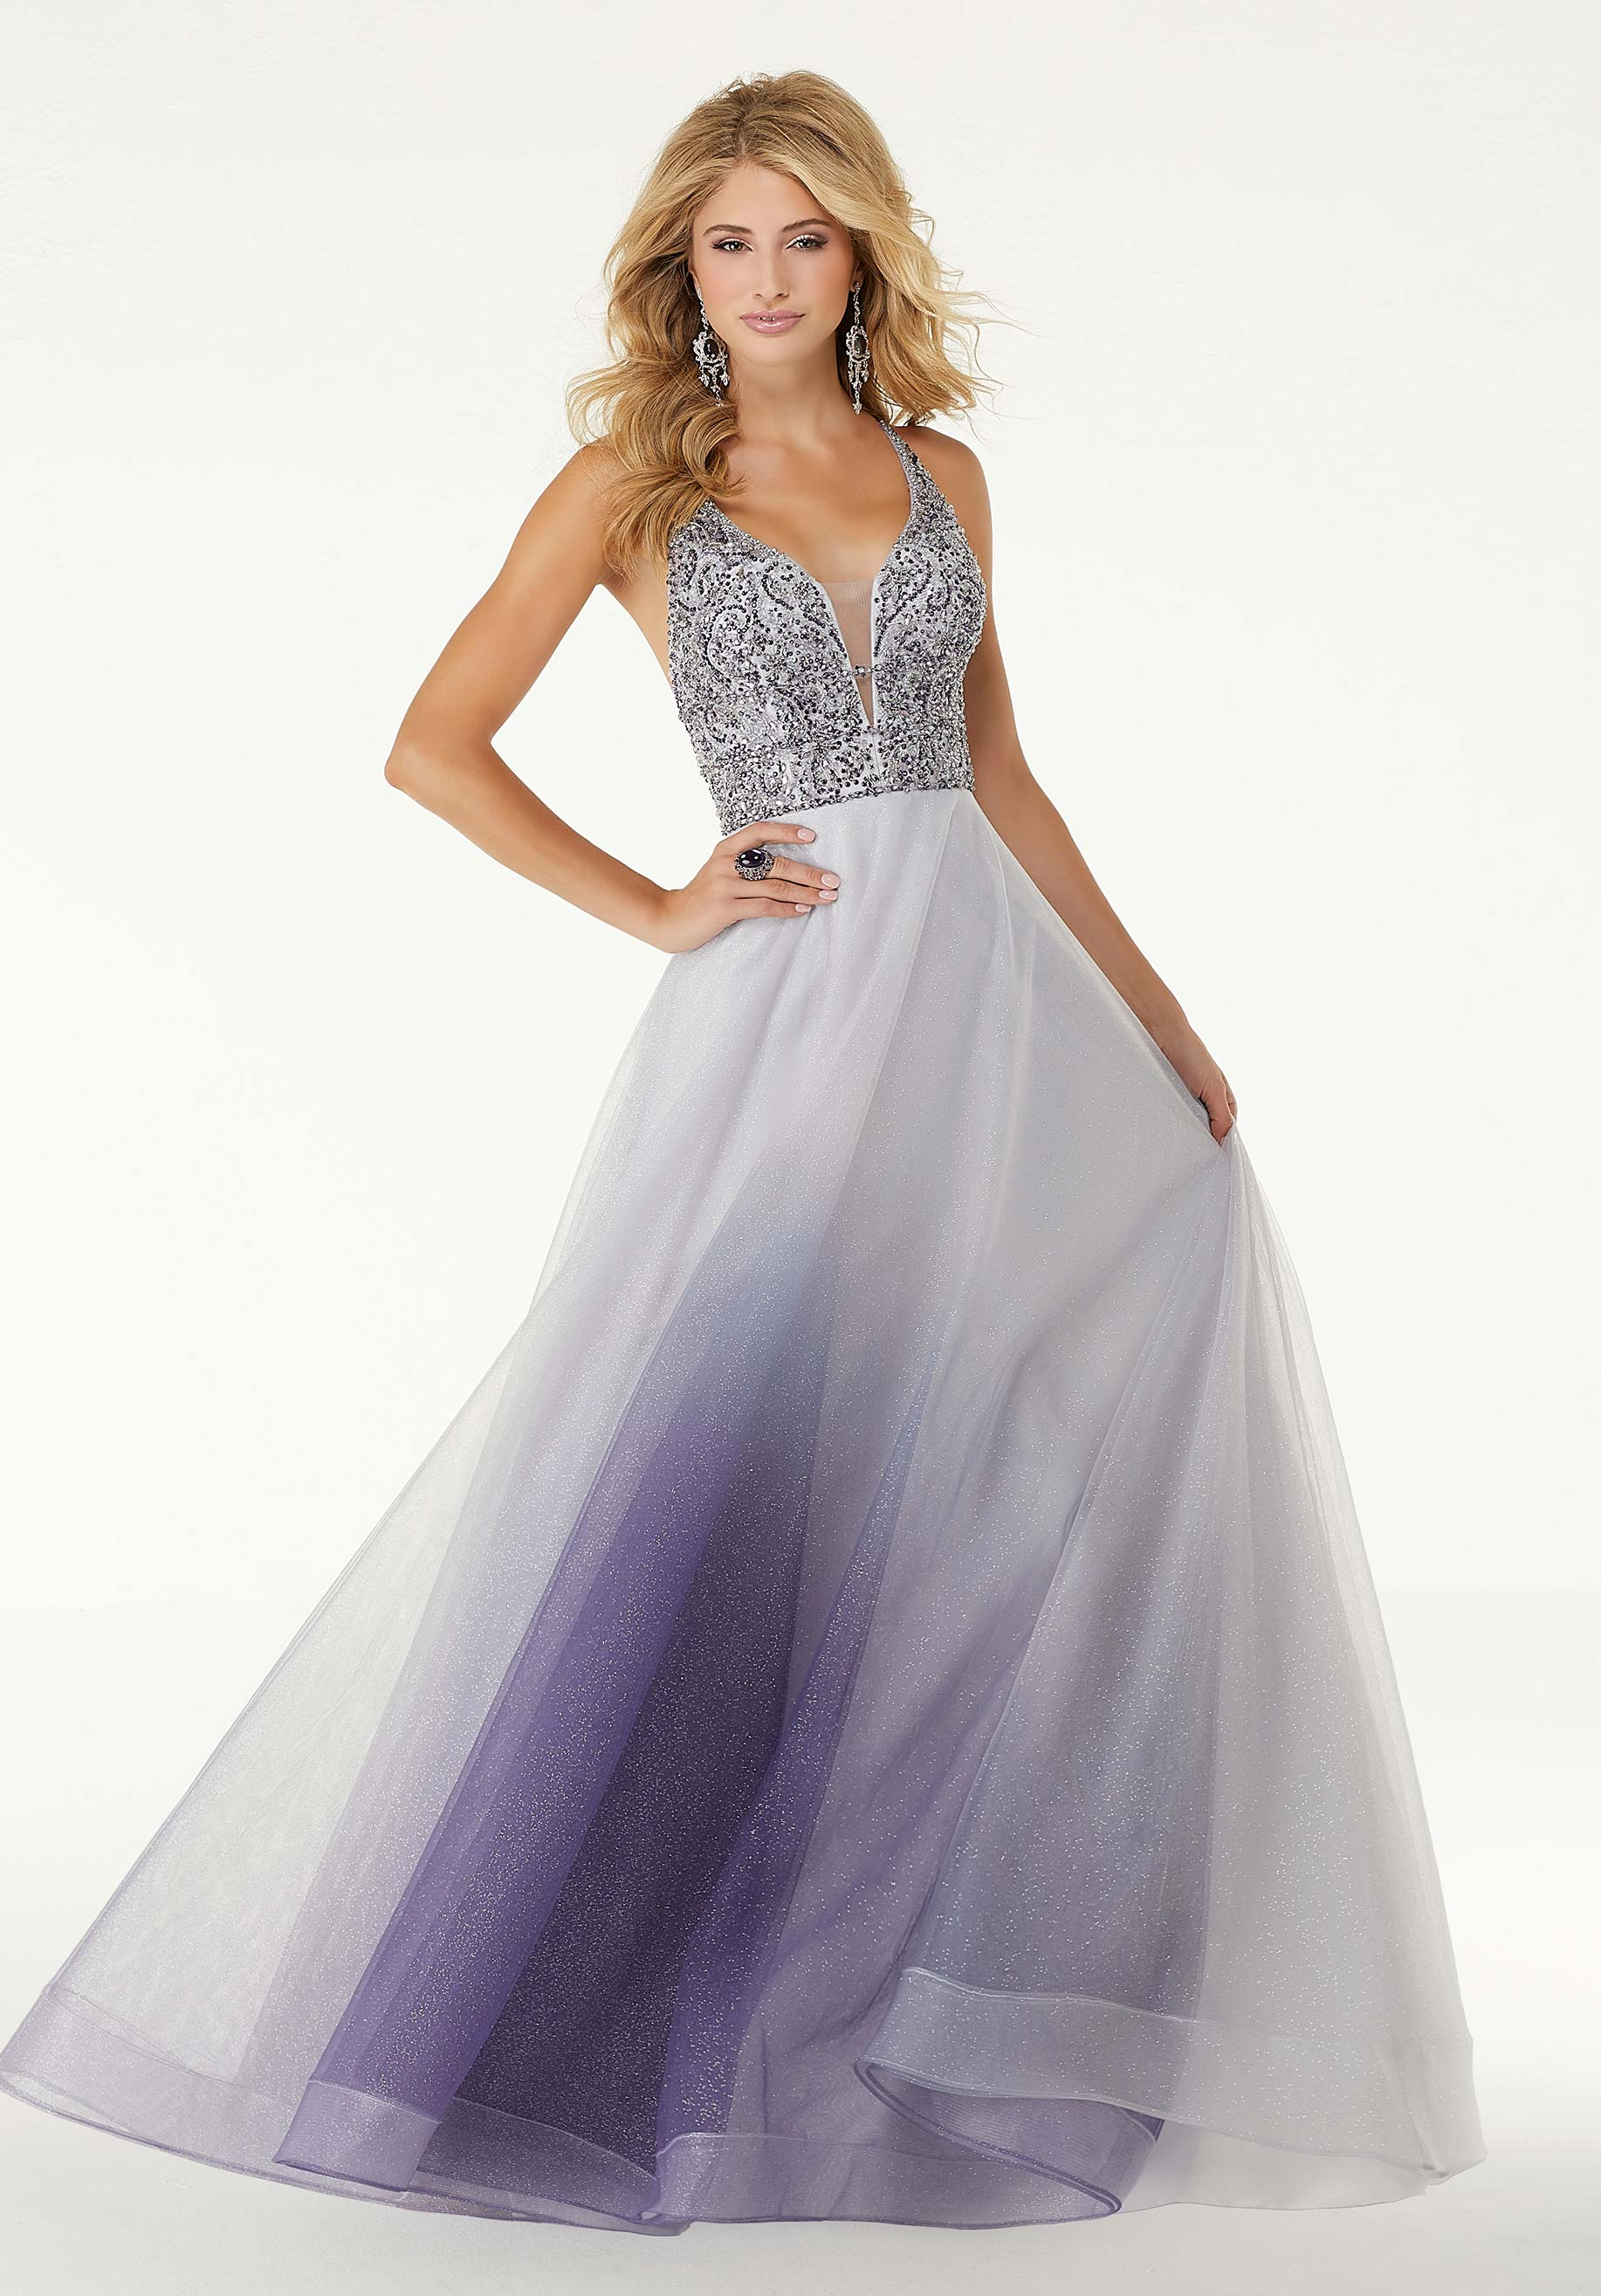 Photo of prom girl wearing a blue sparkling evening dress